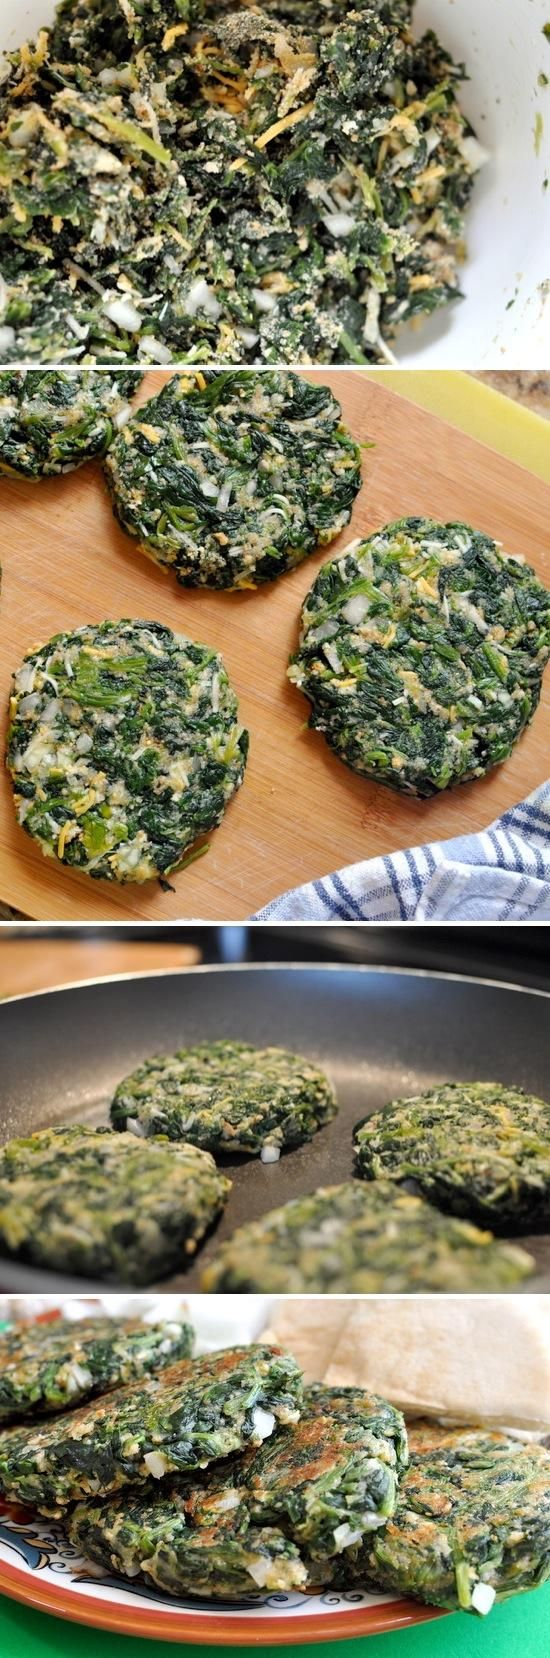 "spinach ""burgers"". These are high in protein, low in carbs"